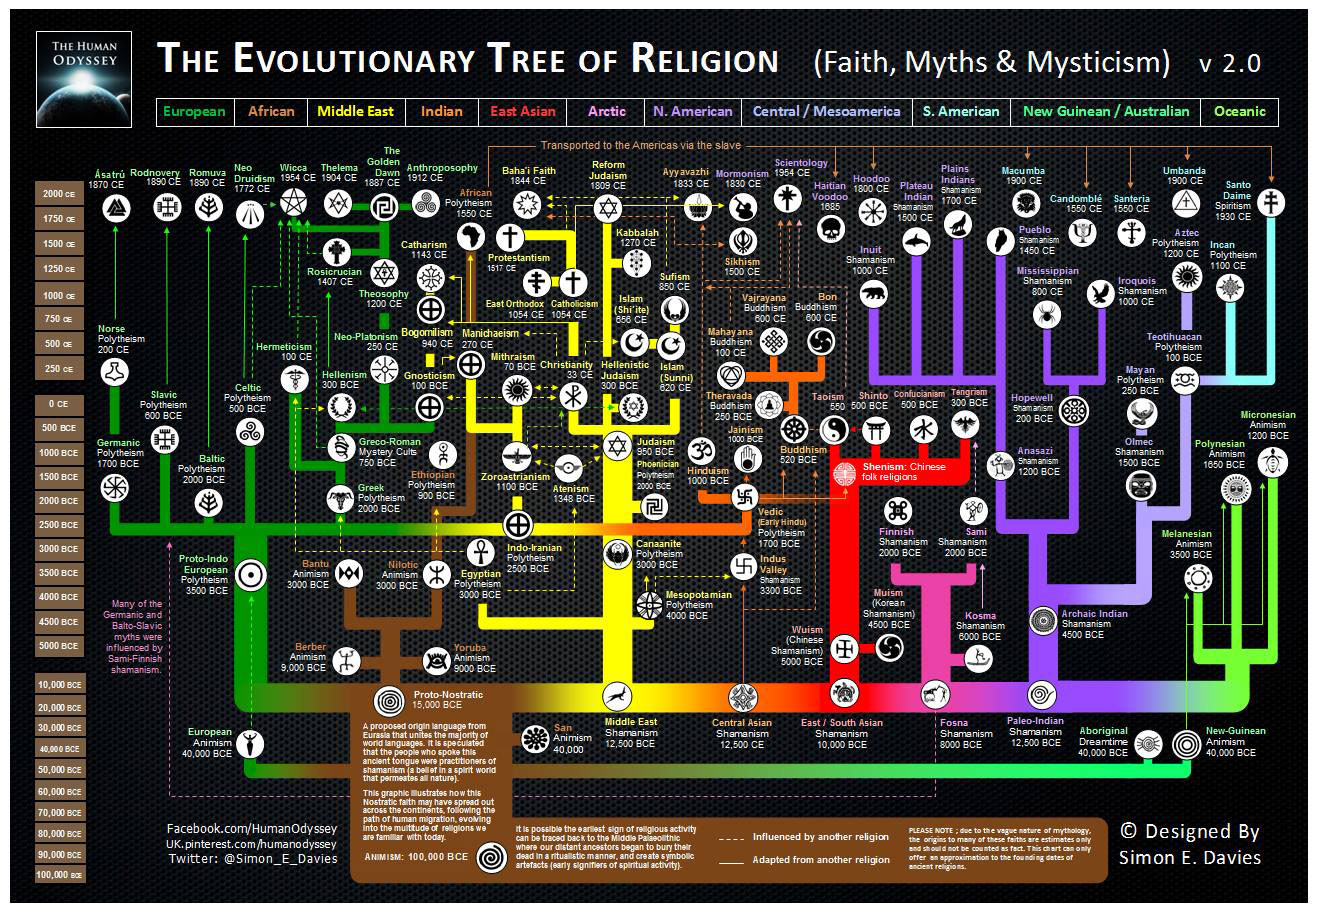 https://i1.wp.com/ultraculture.org/wp-content/uploads/2015/11/evolutionary-tree-religion-2.0.jpg